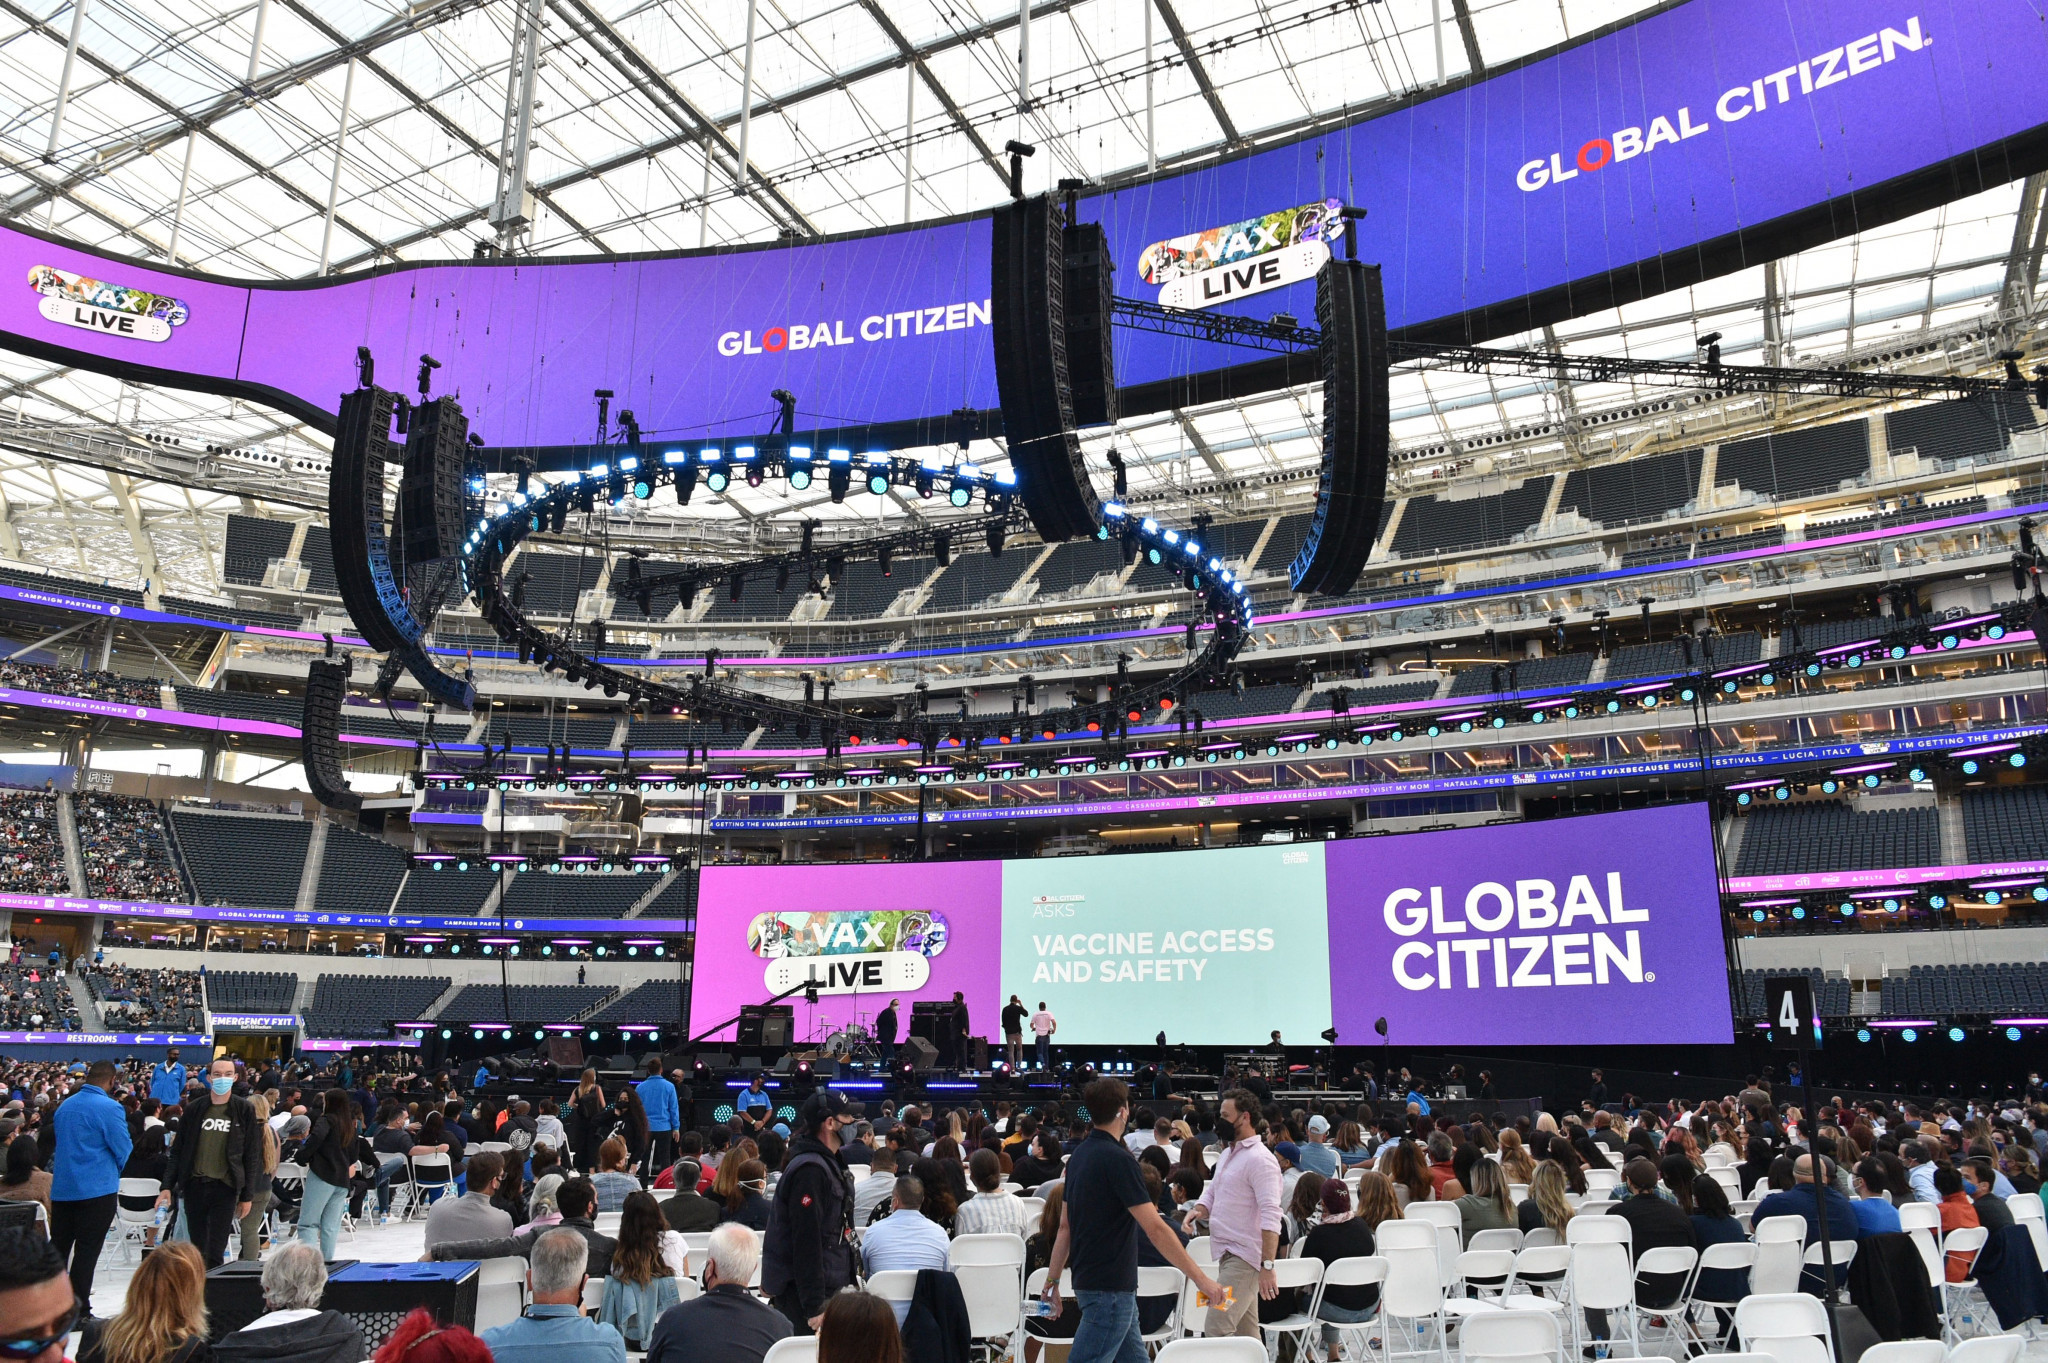 Key Los Angeles 2028 venue SoFi Stadium holds first event with fans in attendance